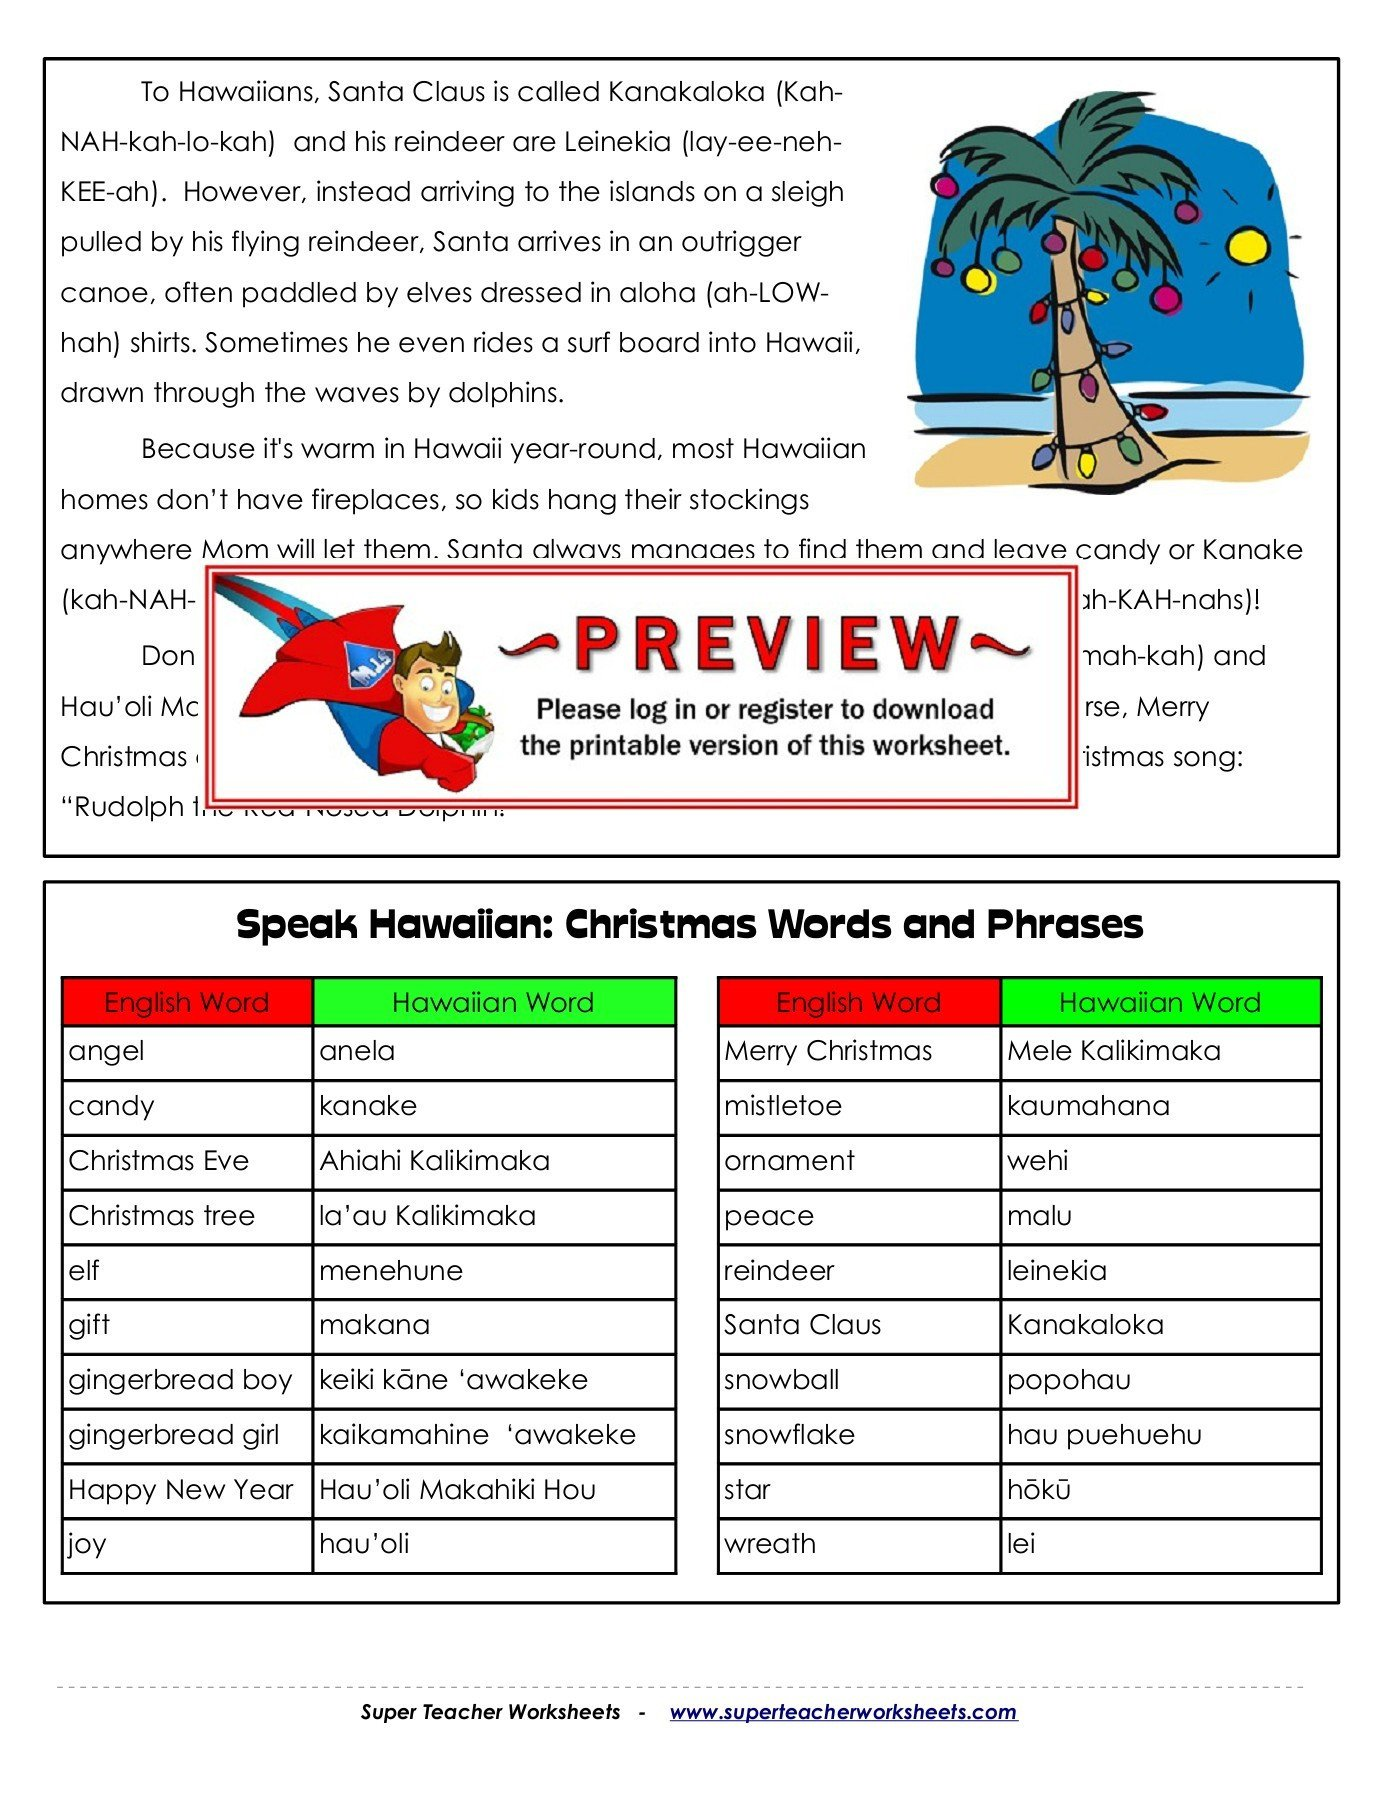 Super Teacher Worksheets Christmas Christmas In Hawaii Super Teacher Worksheets Pages 1 7